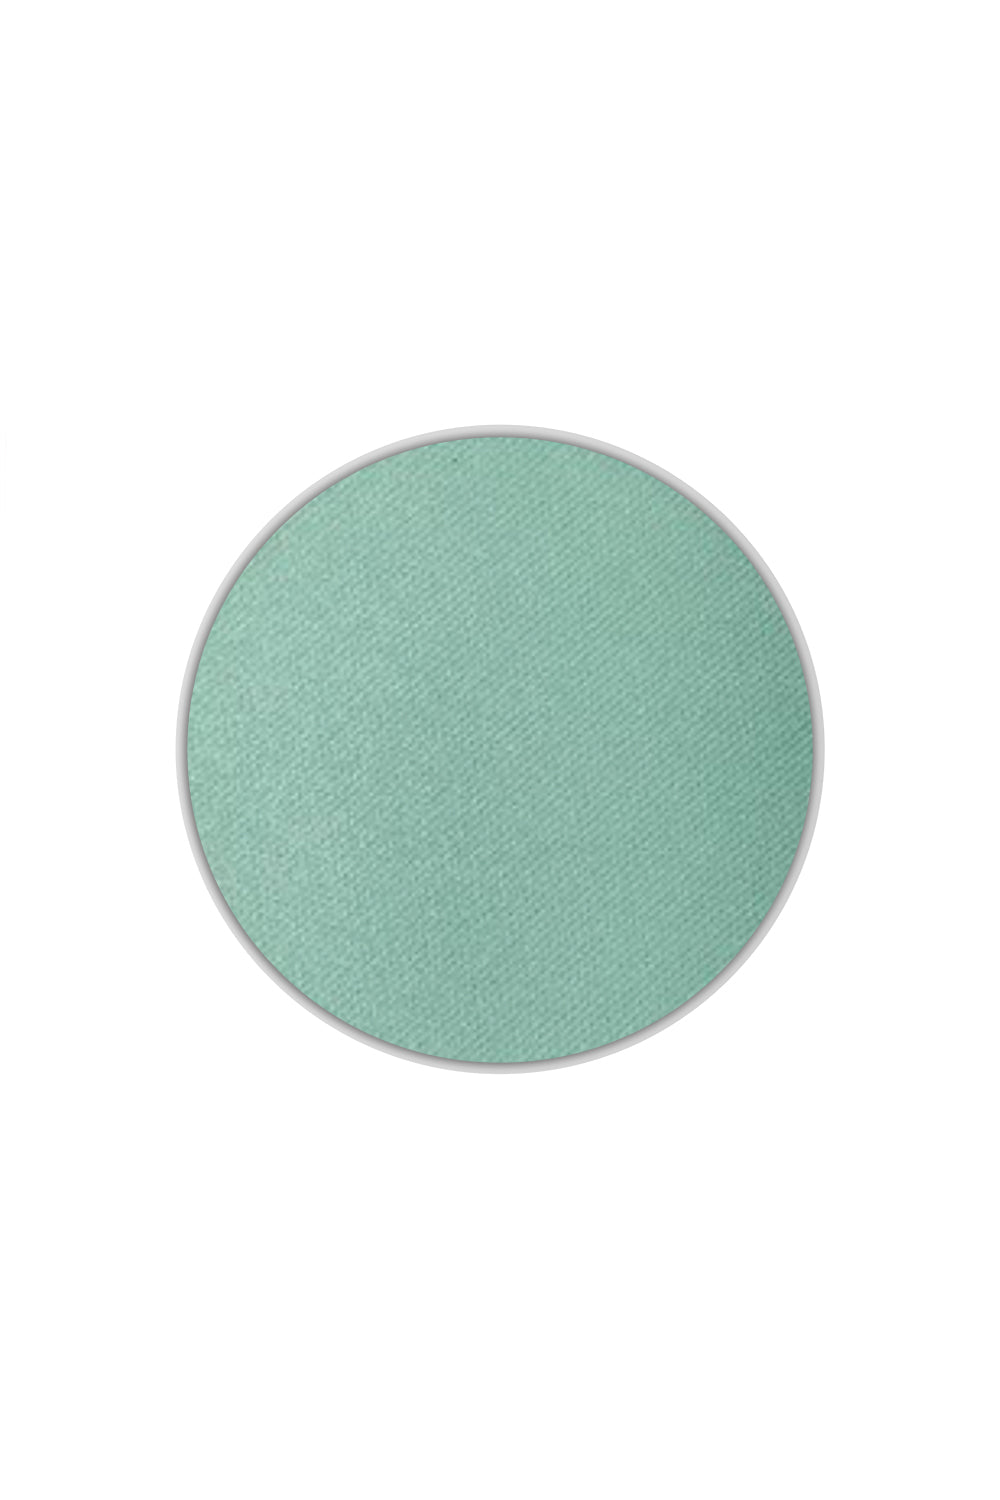 Type 1 Eyeshadow Pan - Mermaid